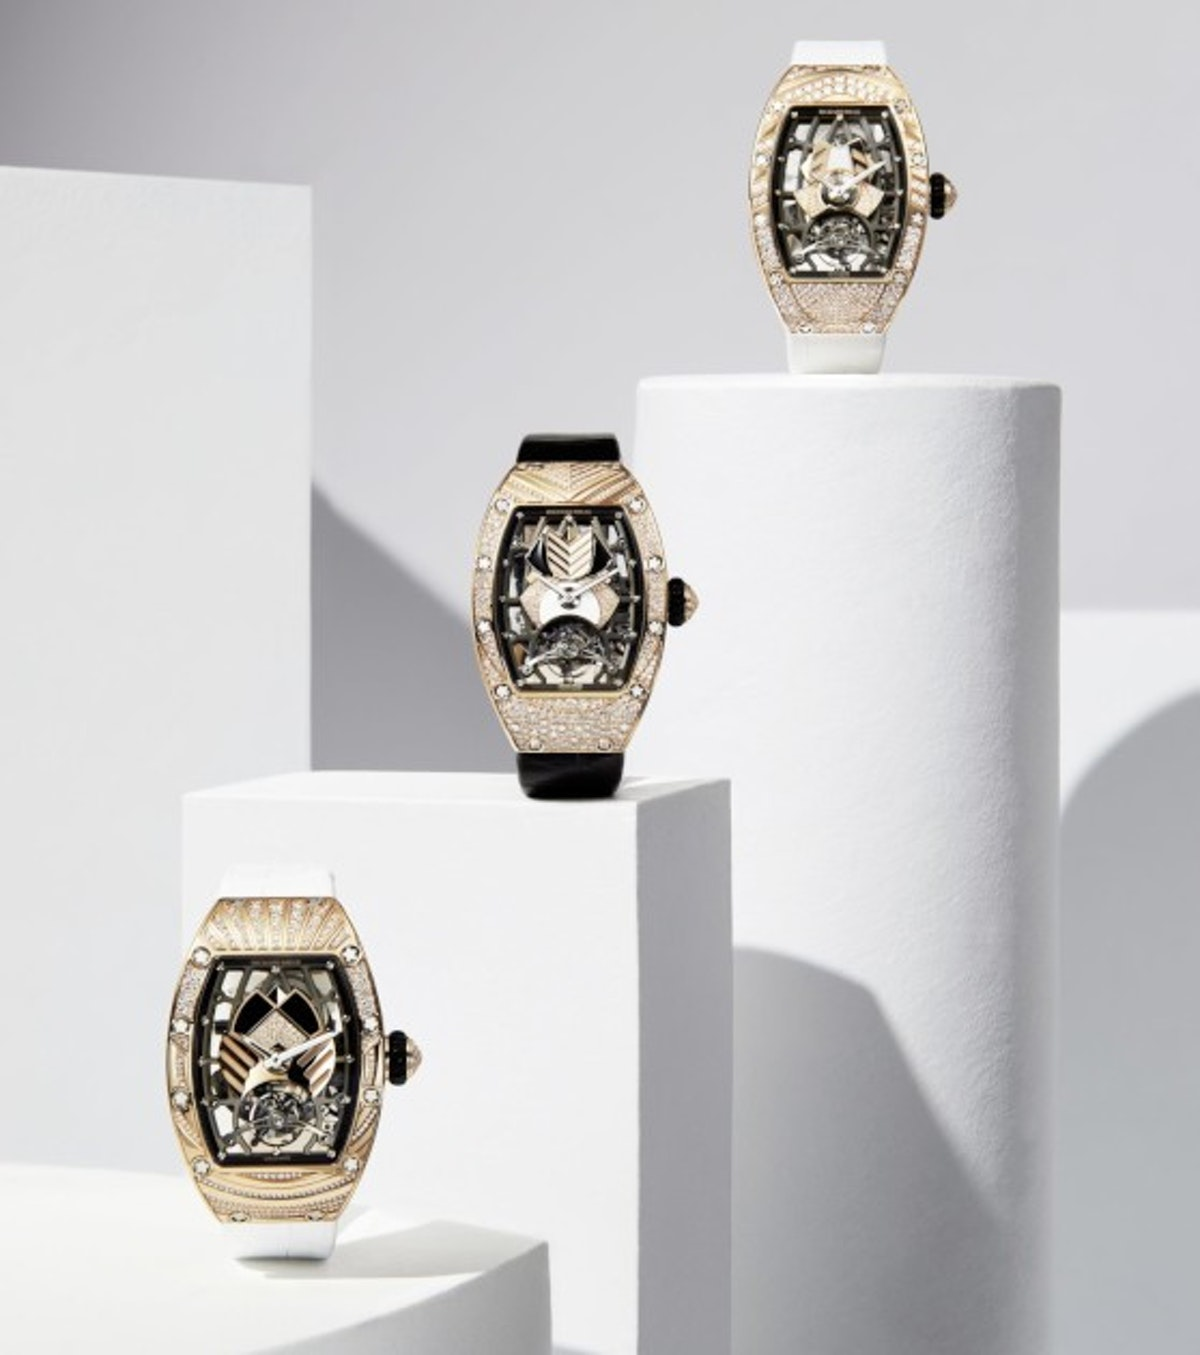 Richard Mille watch 4